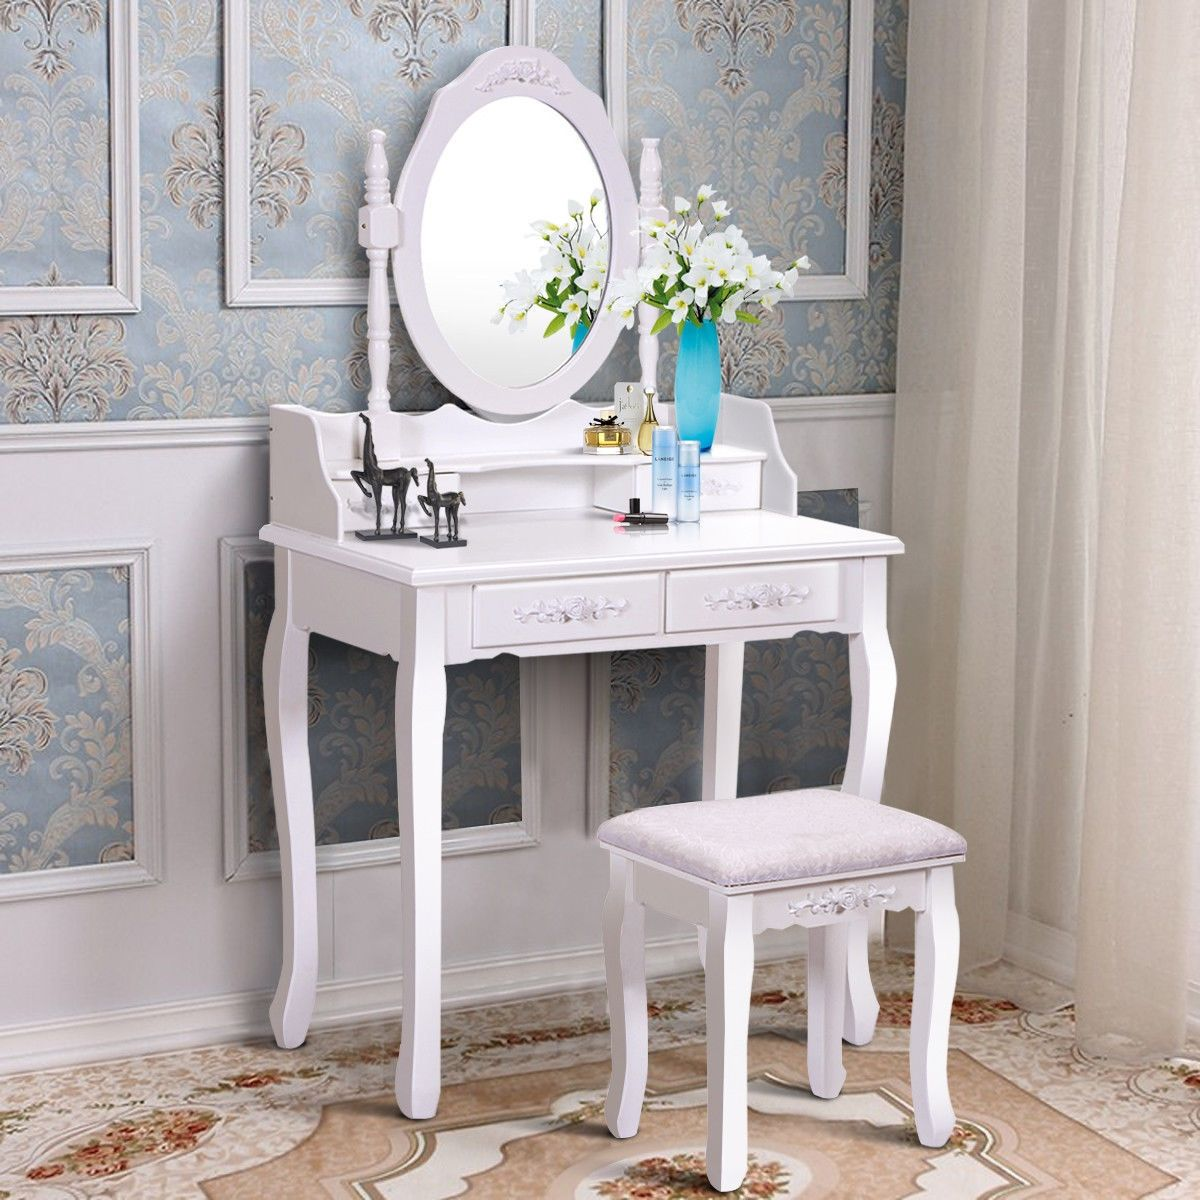 Vanity makeup dressing table and stool set furniture in